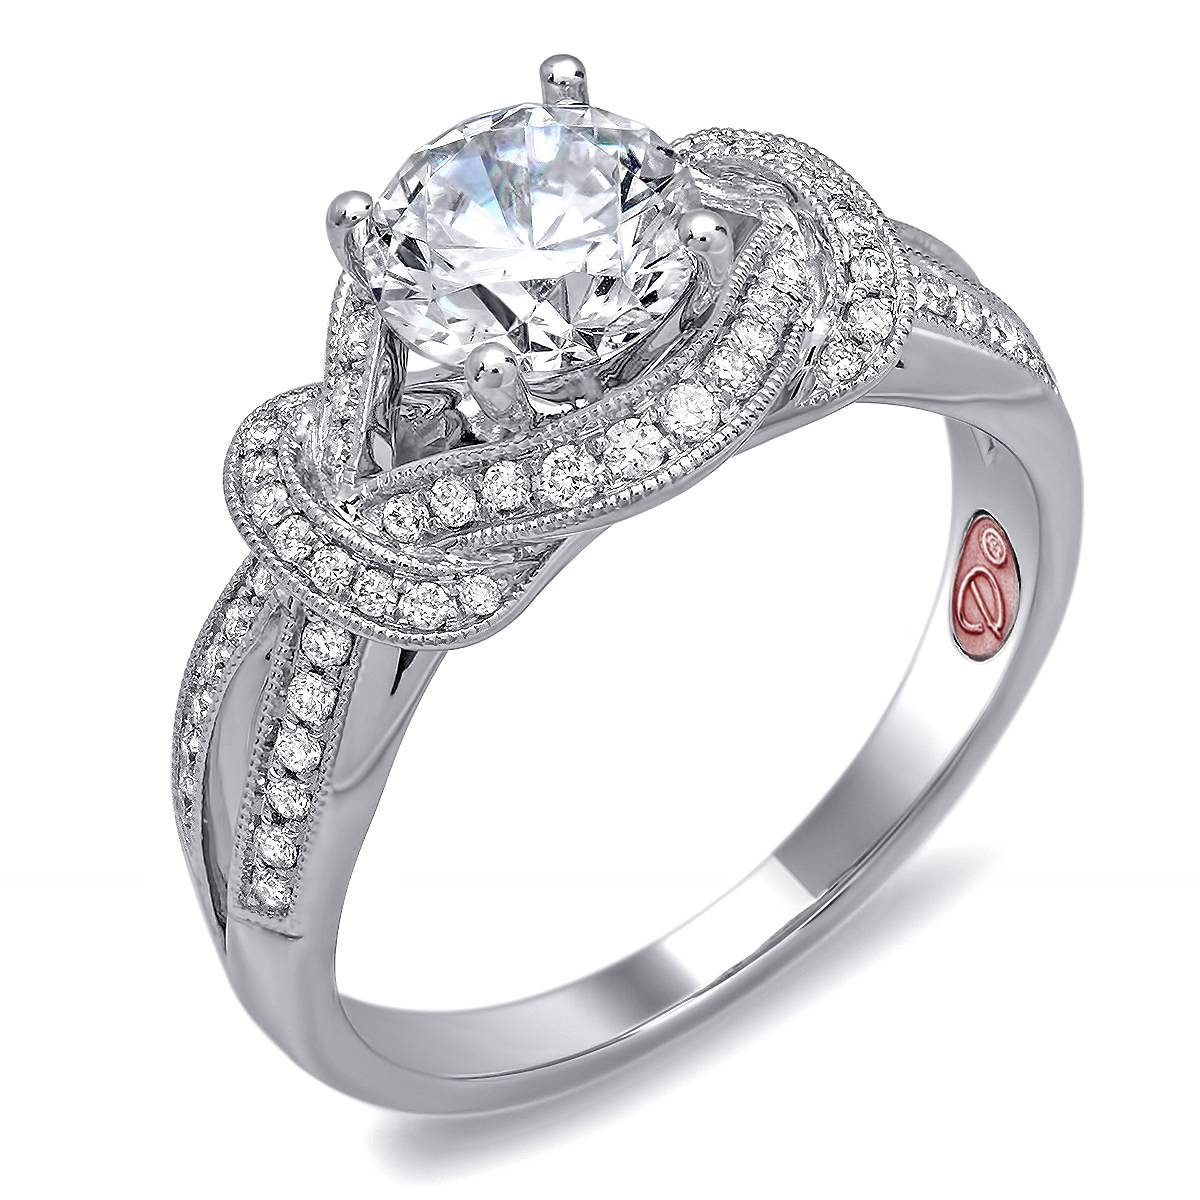 Designer Jewelry | Demarco Bridal Jewelry Official Blog | Page 4 Intended For Love Knot Engagement Rings (View 1 of 15)